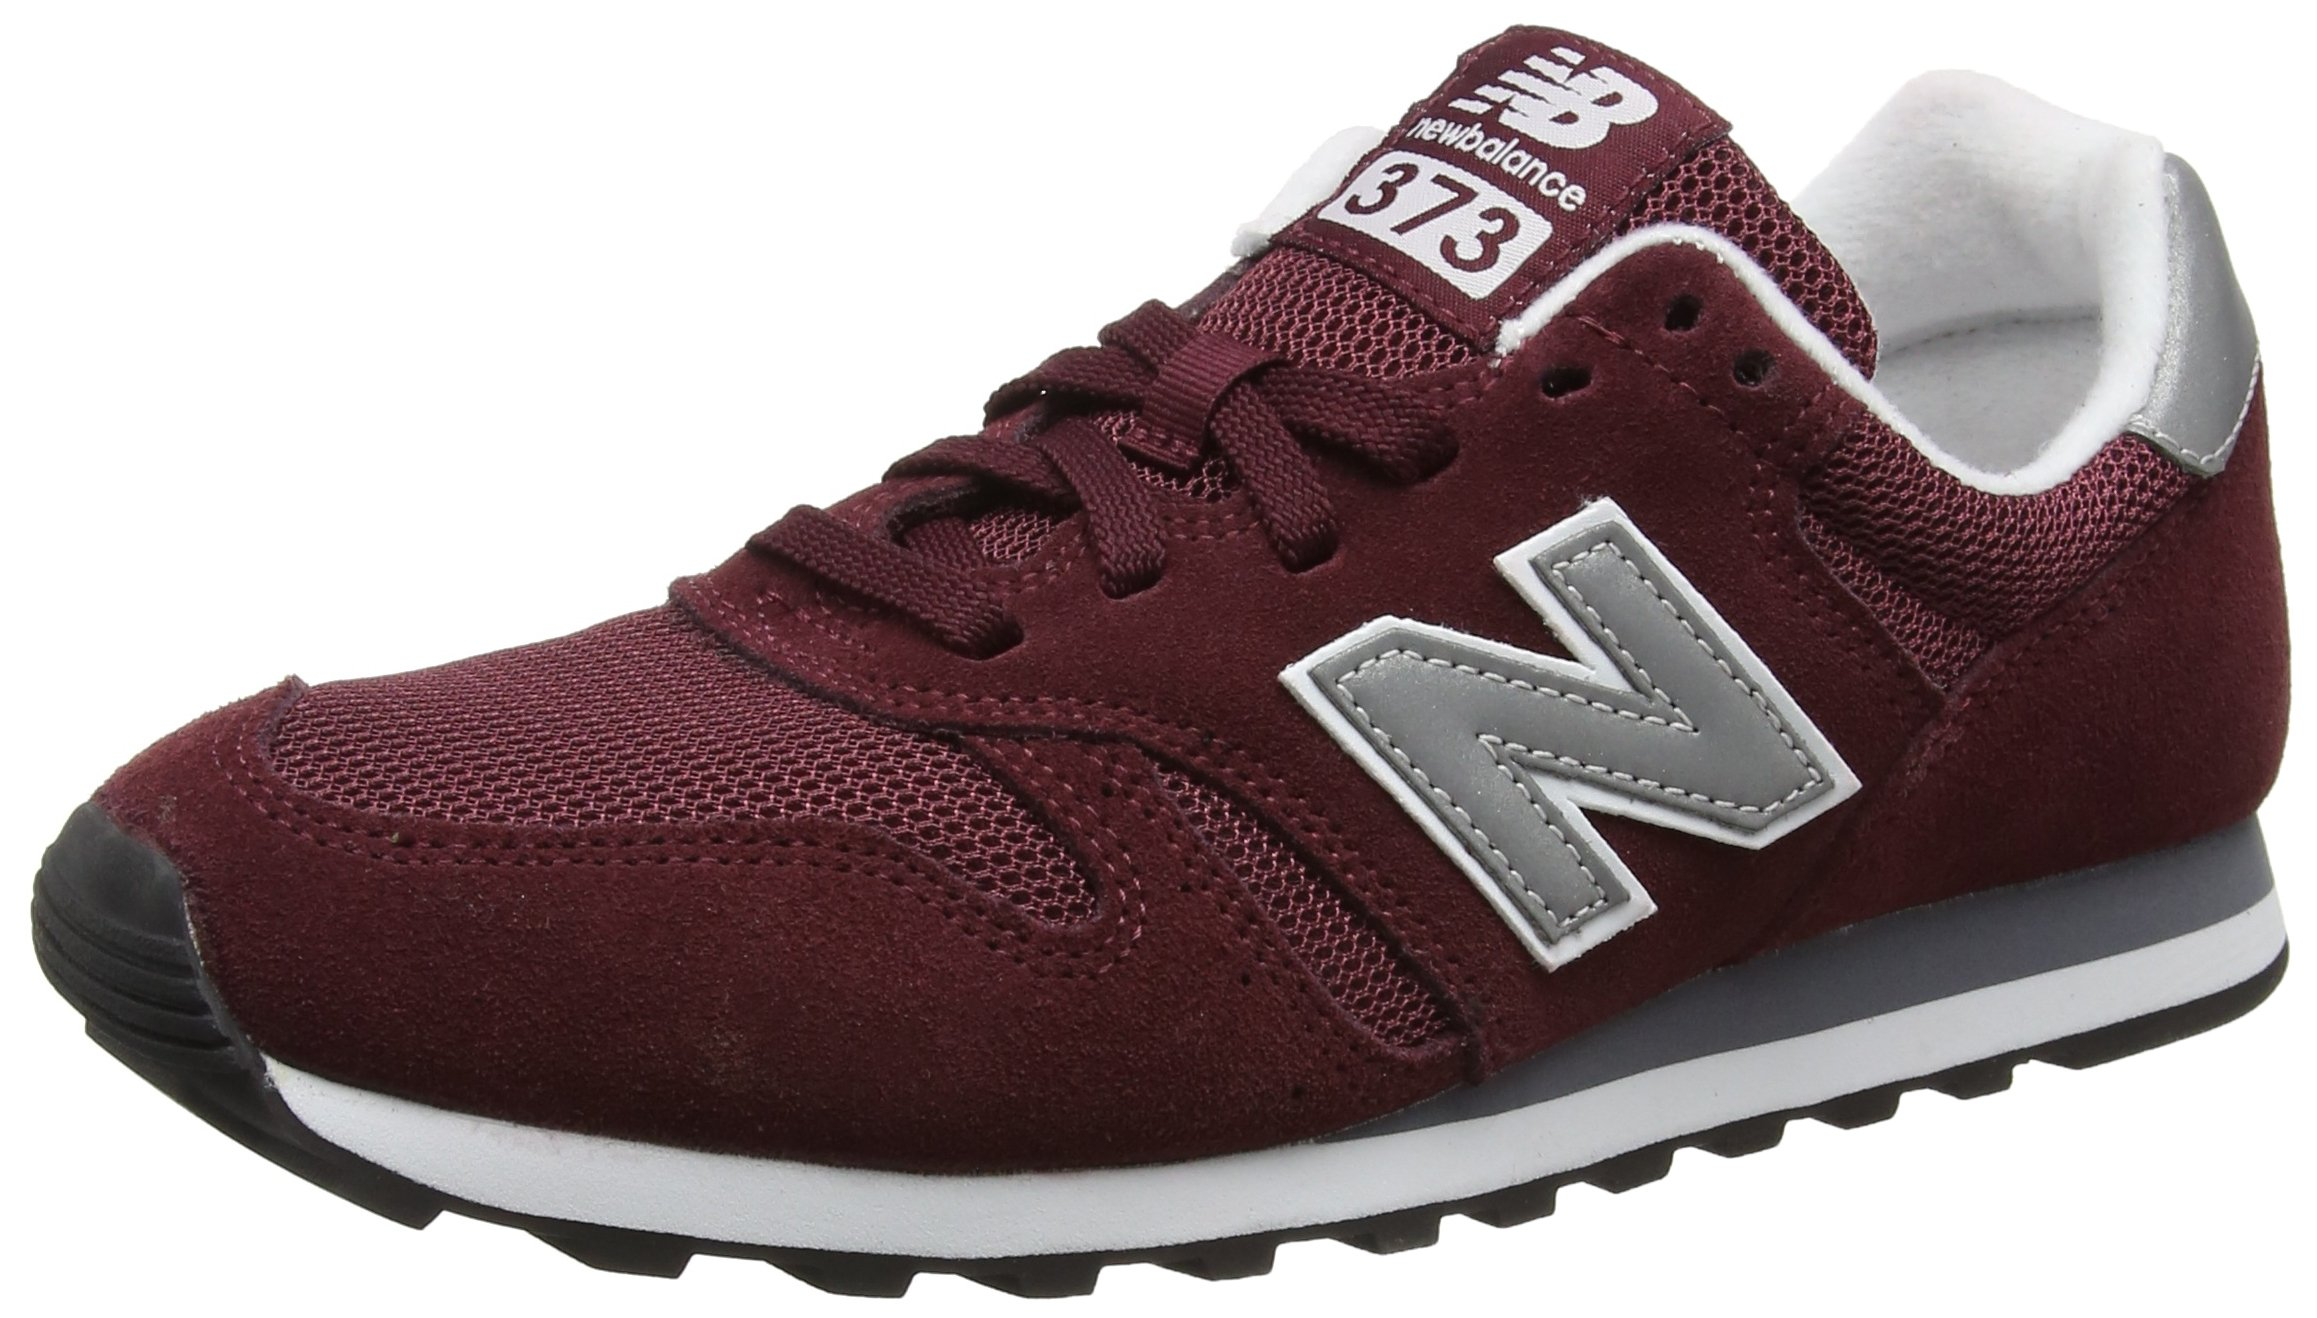 New Balance Men's 373 Suede Trainers, Red, 11 US